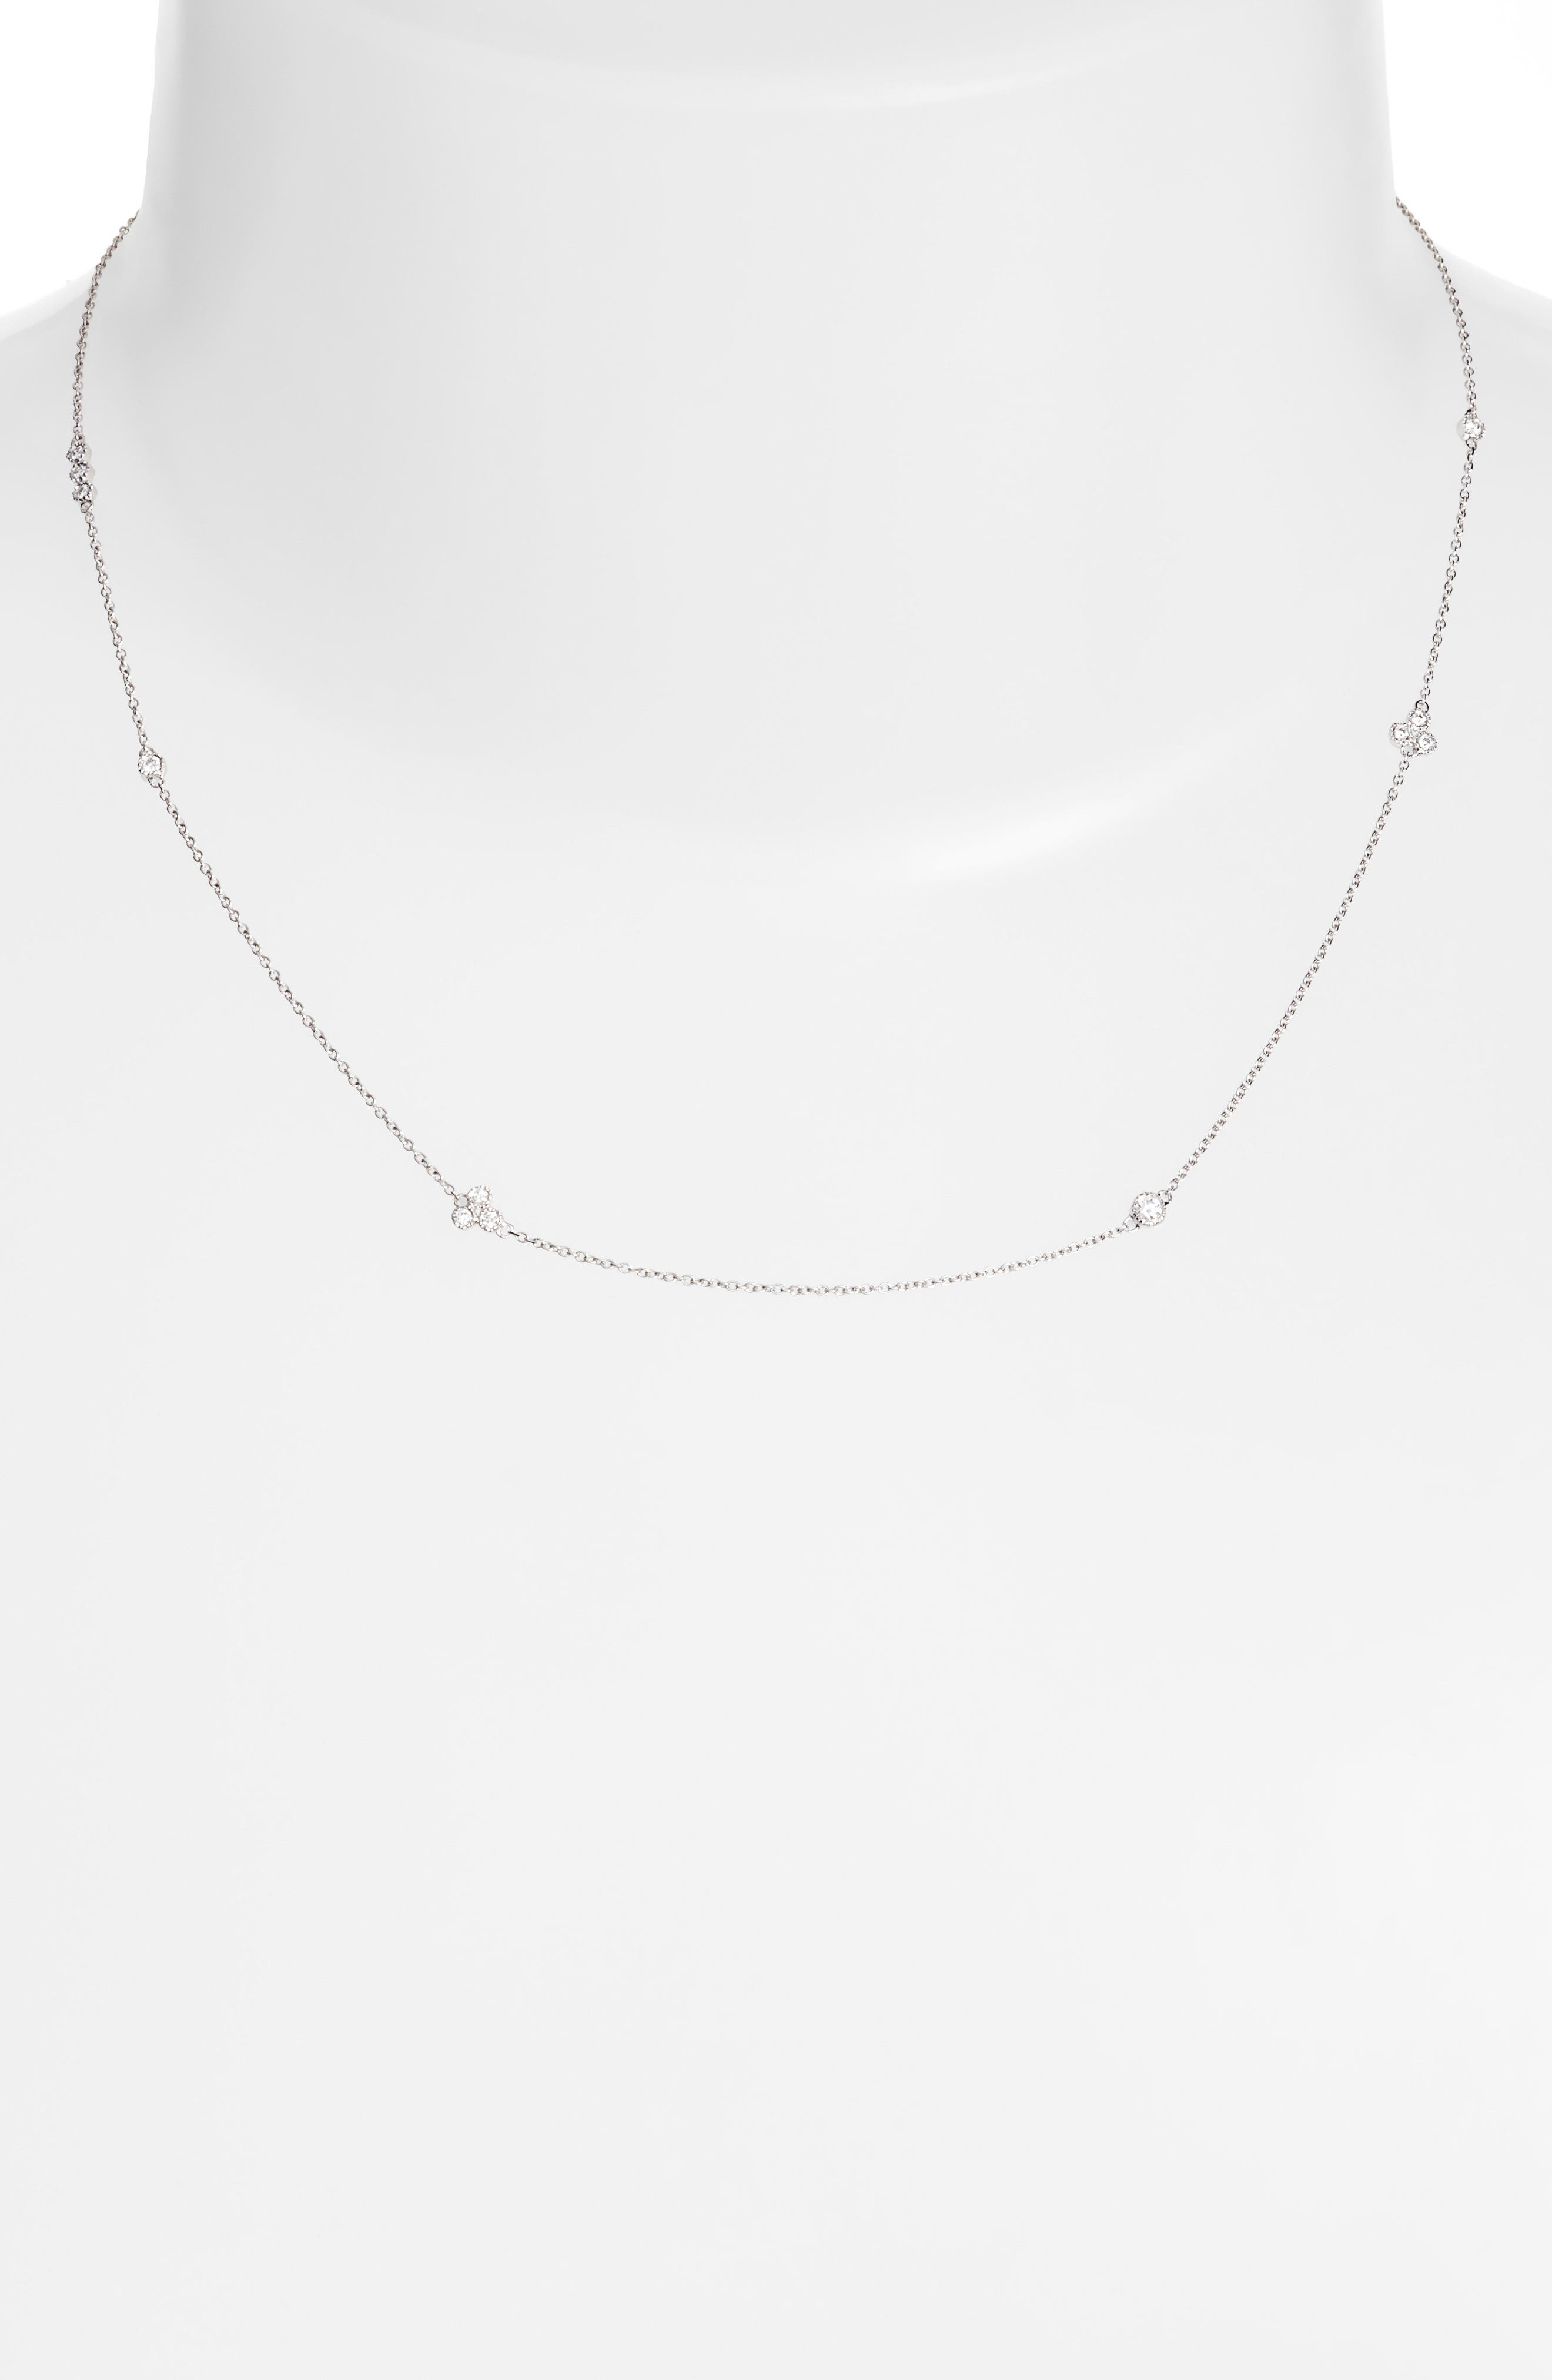 Main Image - Bony Levy Harlowe Short Diamond Station Necklace (Nordstrom Exclusive)